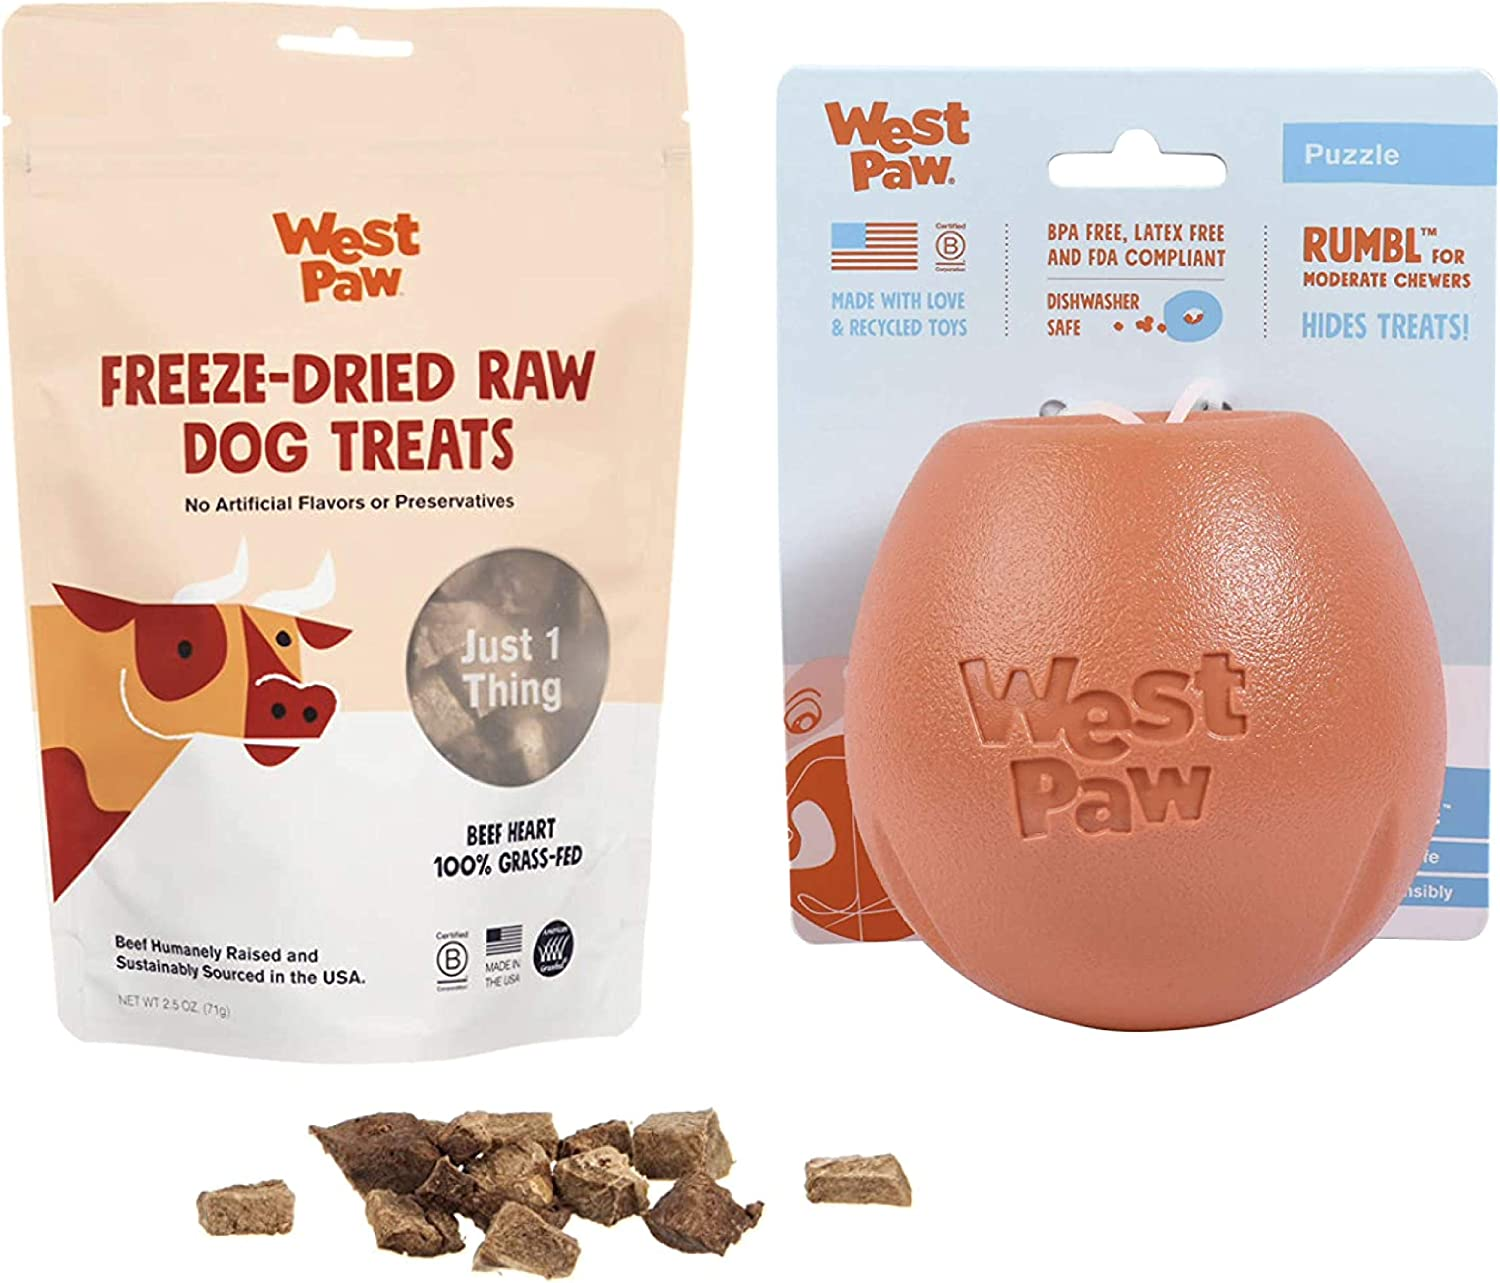 West Paw Beef Heart Freeze-Dried Raw Dog Treats, 100% Grass Fed & Zogoflex Rumbl Treat-Dispensing Dog Toy for Moderate Chewers, Fetch, Catch – Holds Kibble, Treats (Melon, Large)